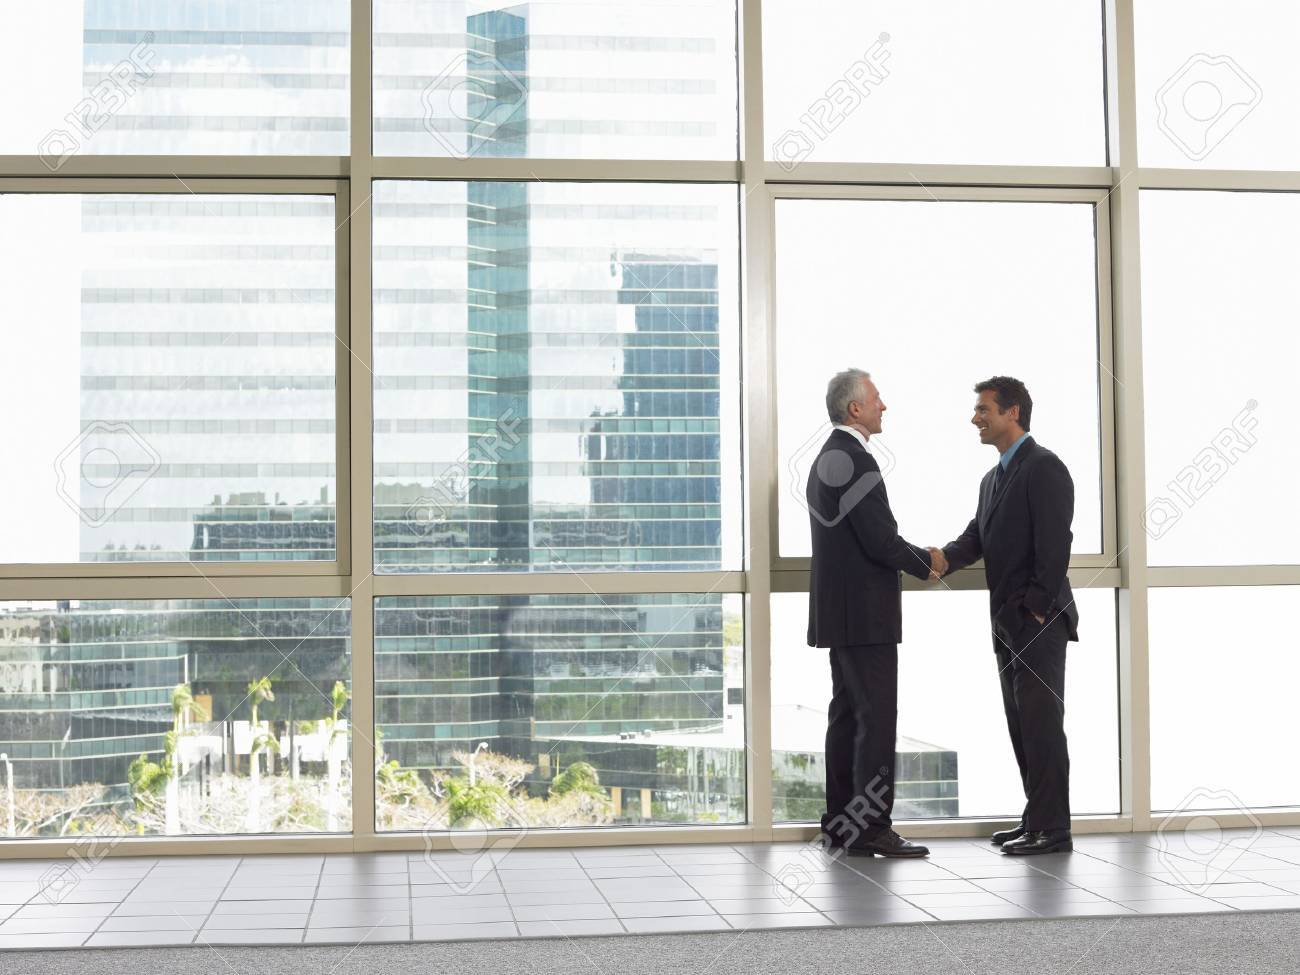 Businessmen shaking hands in office building Stock Photo - 18884624